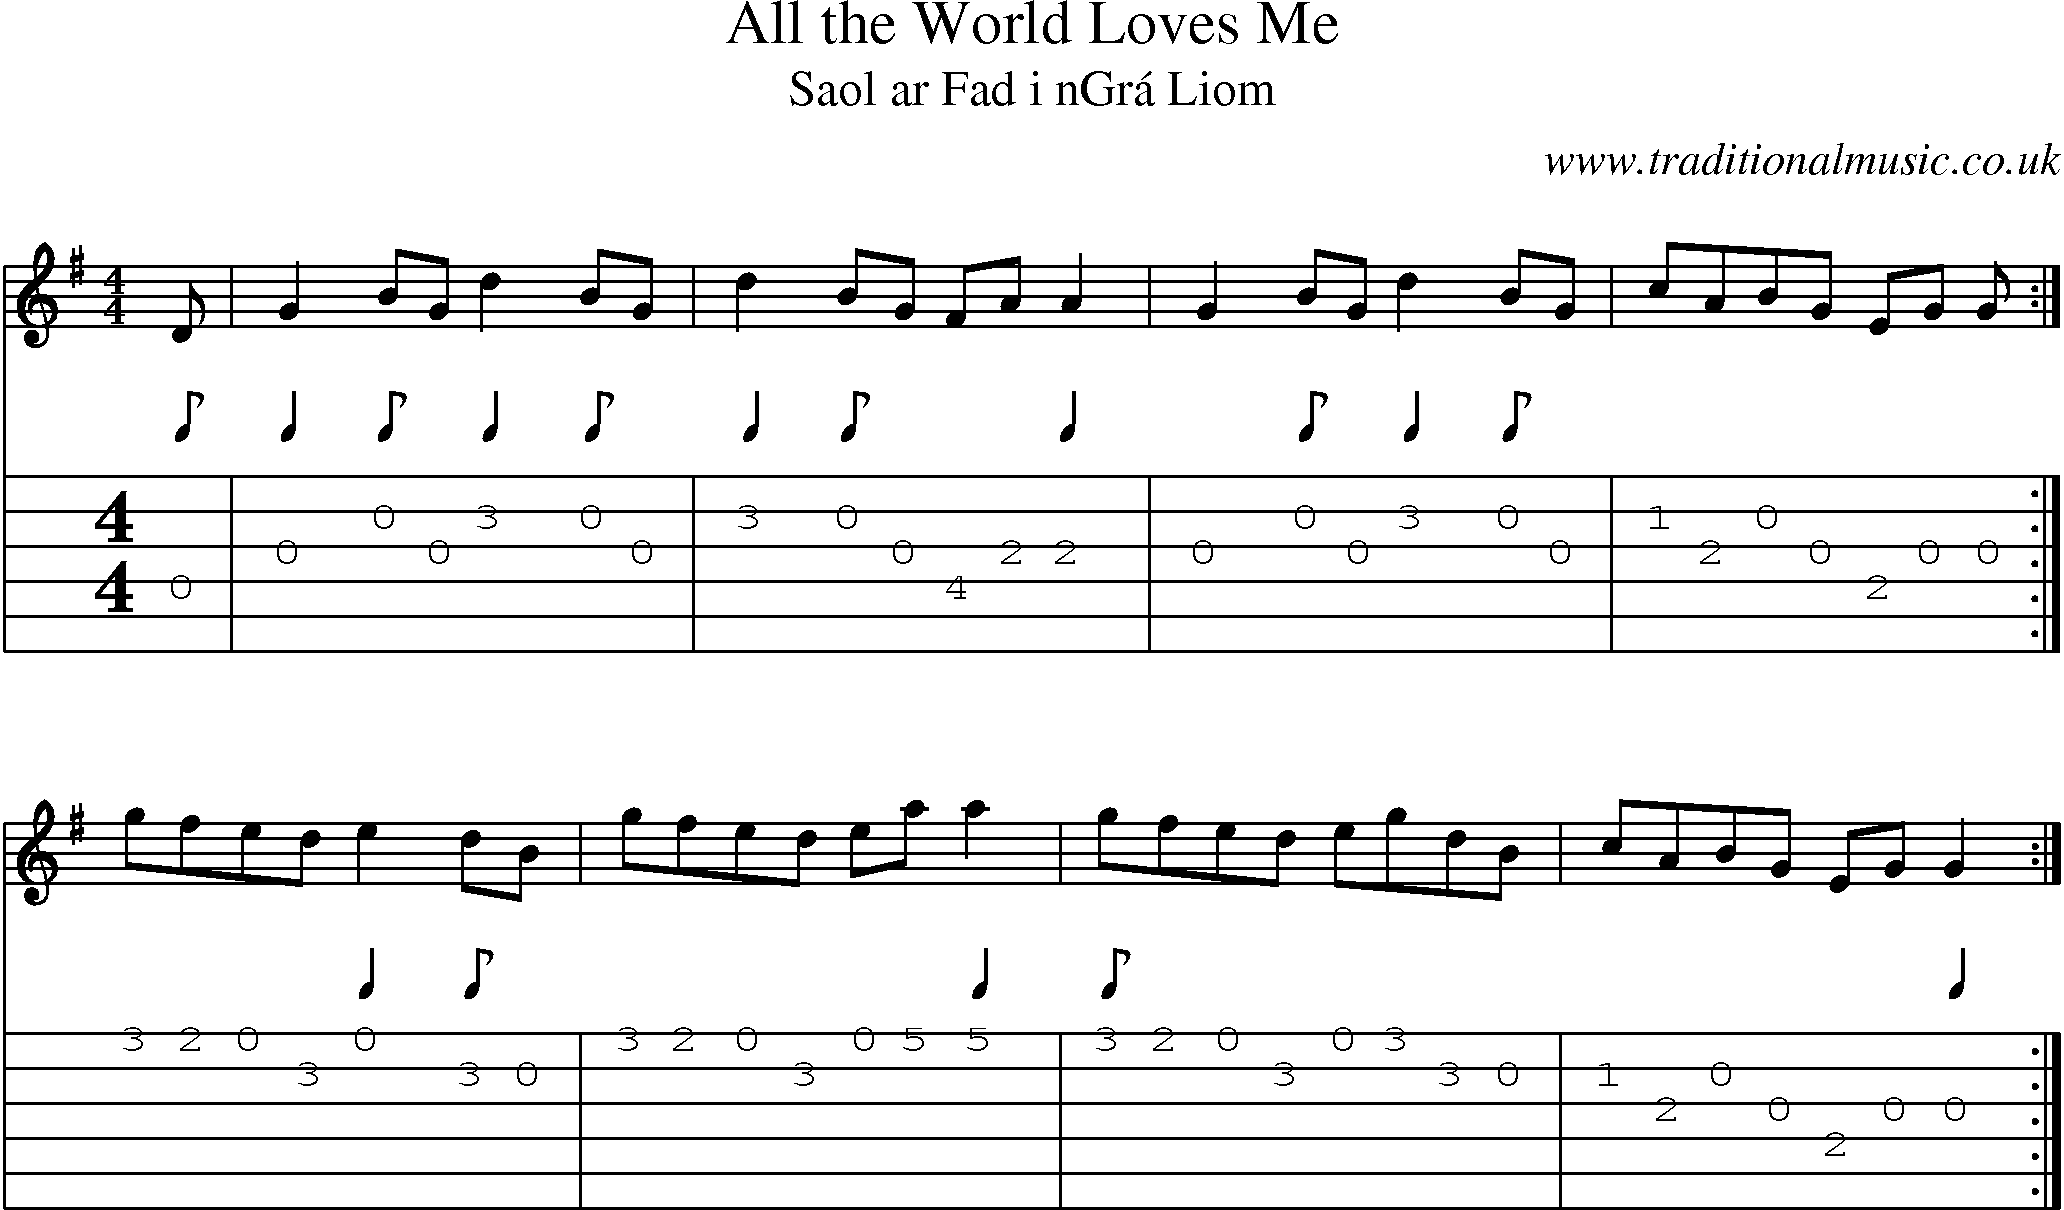 Irish Music Tune: All World Loves Me with Guitar Tab, Sheetmusic, Midi, Mp3 and PDF